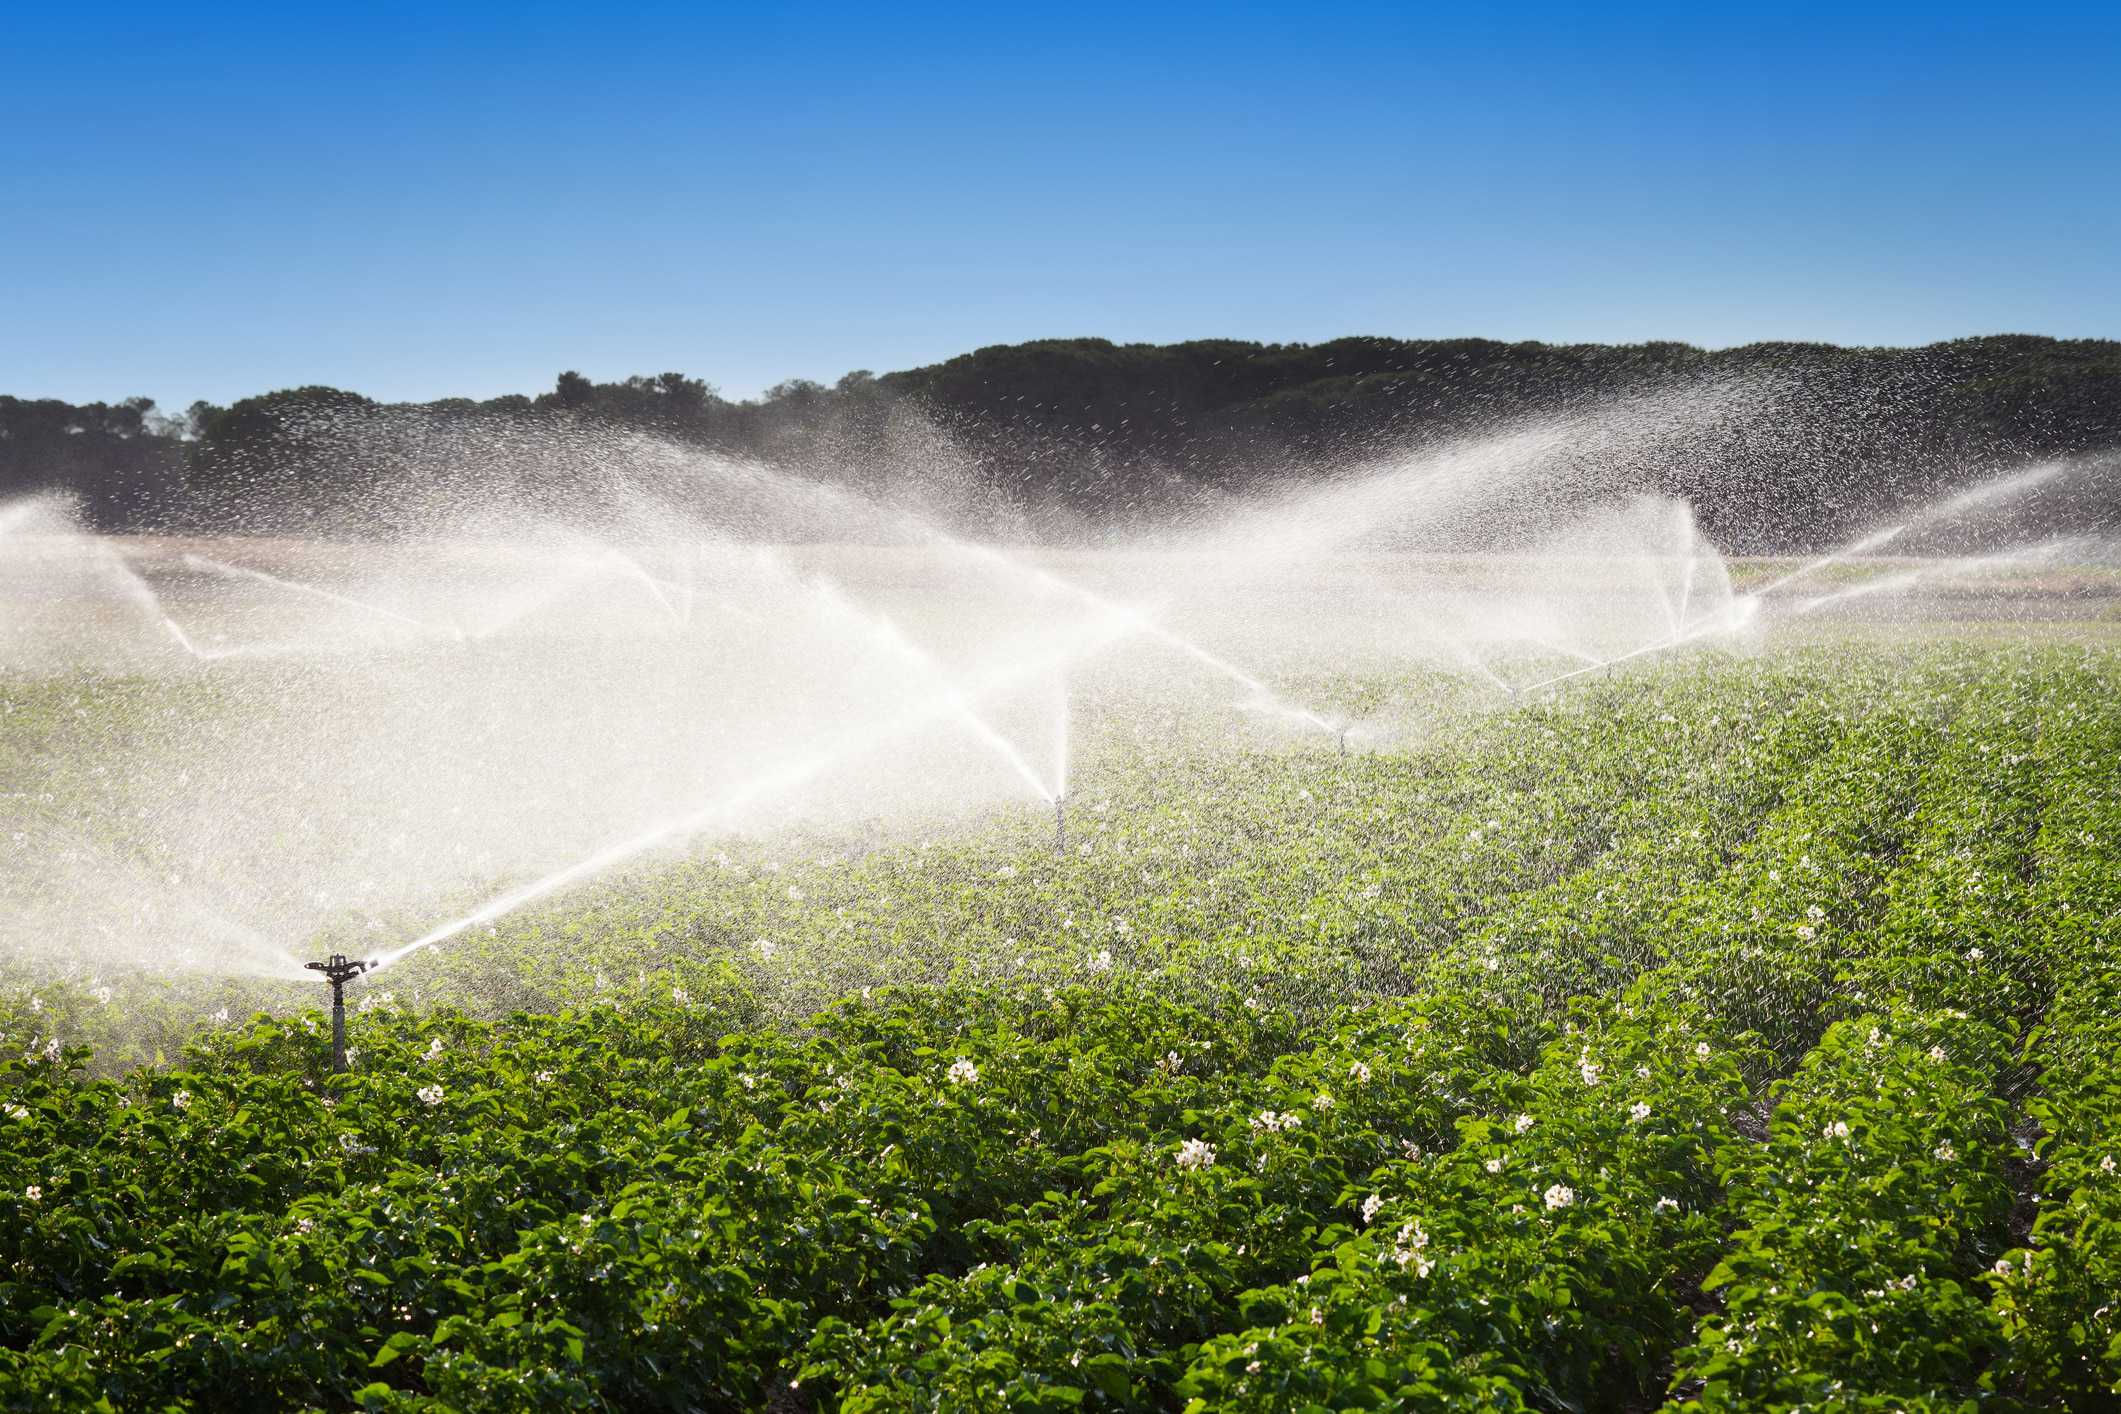 Getting the balance right: Water resources and food security in Saudi Arabia